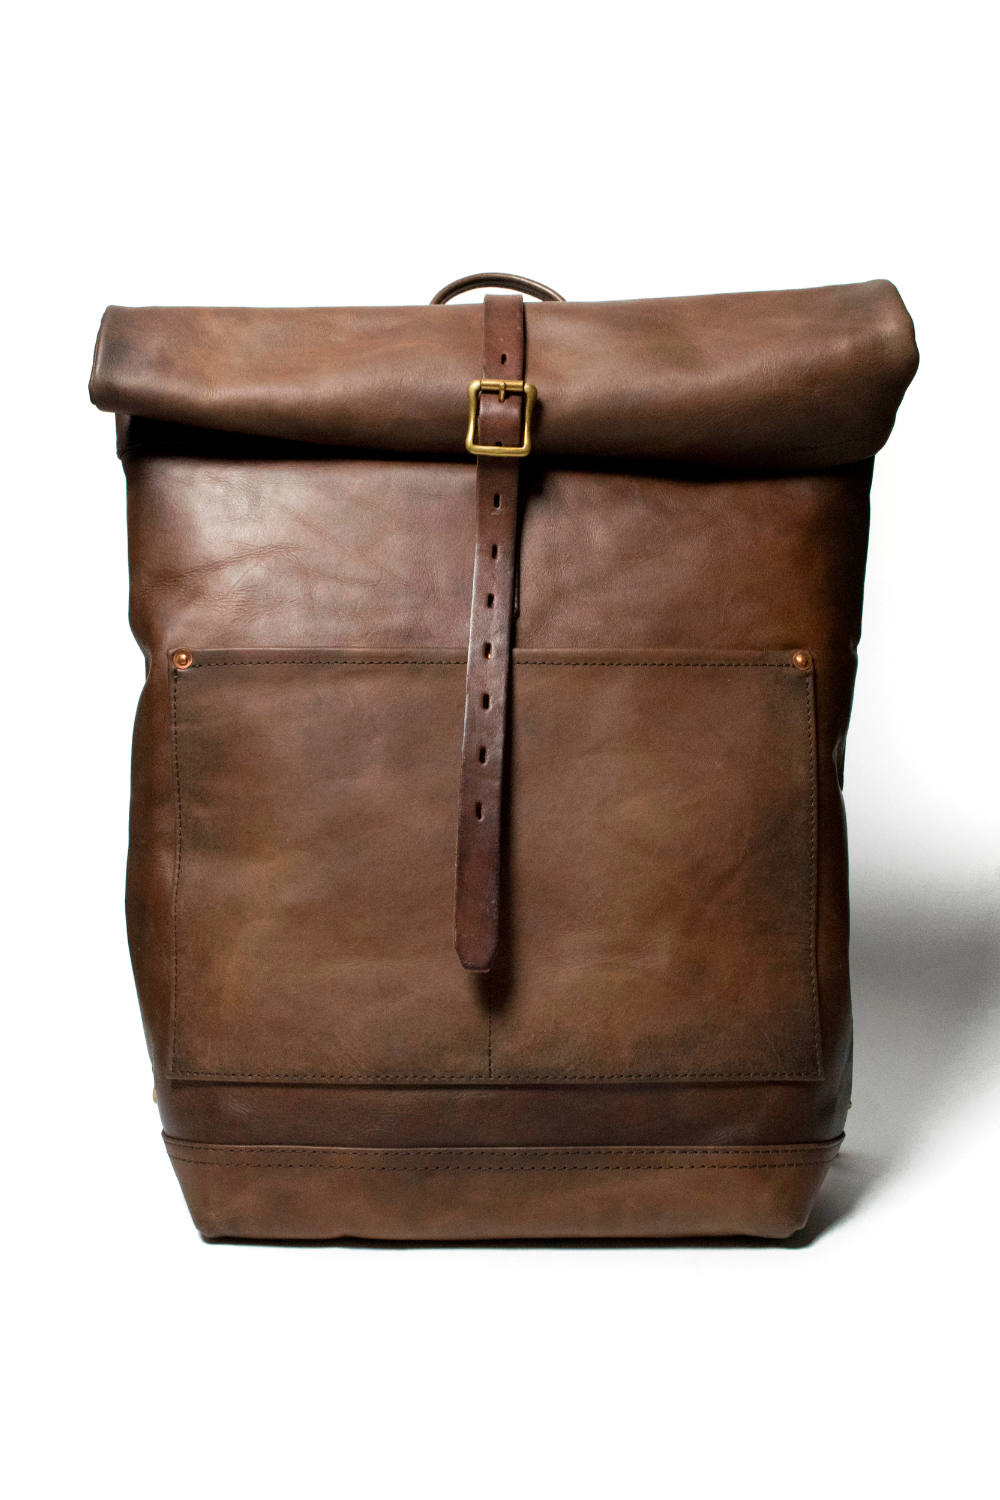 【20AW】レザーロールトップリュックサック [ブラウン] / LEATHER ROLLTOP RUCKSACK [BROWN]